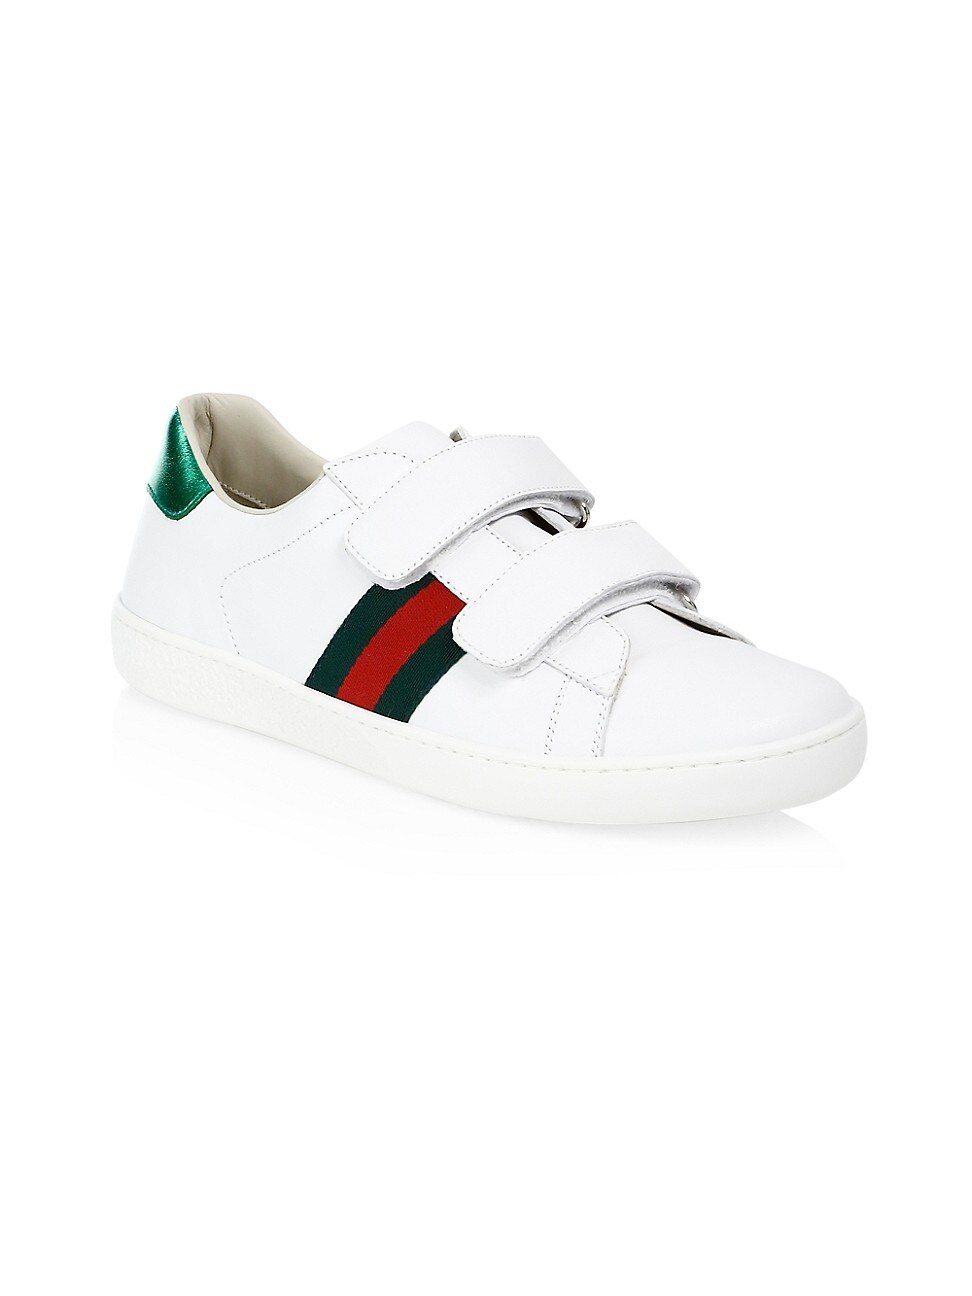 GUCCI KID'S NEW ACE LEATHER SNEAKERS